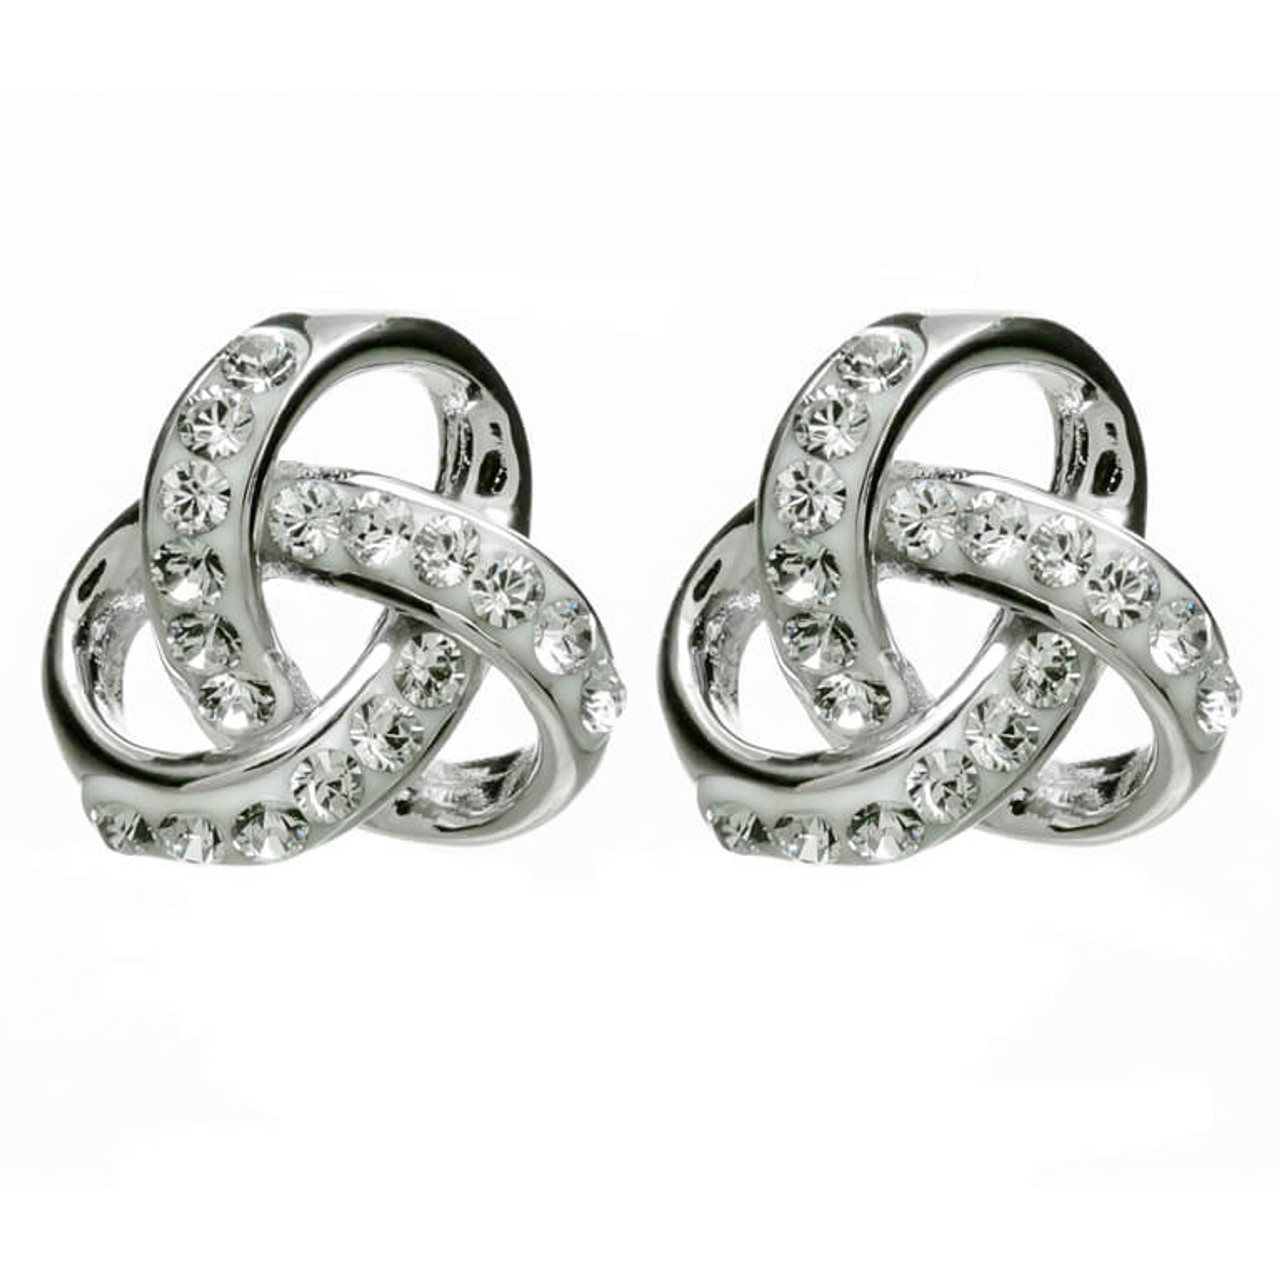 814400be0 Sterling Silver Rounded Celtic Trinity Knot Stud Earrings Embellished with  Swarovski® White Crystals